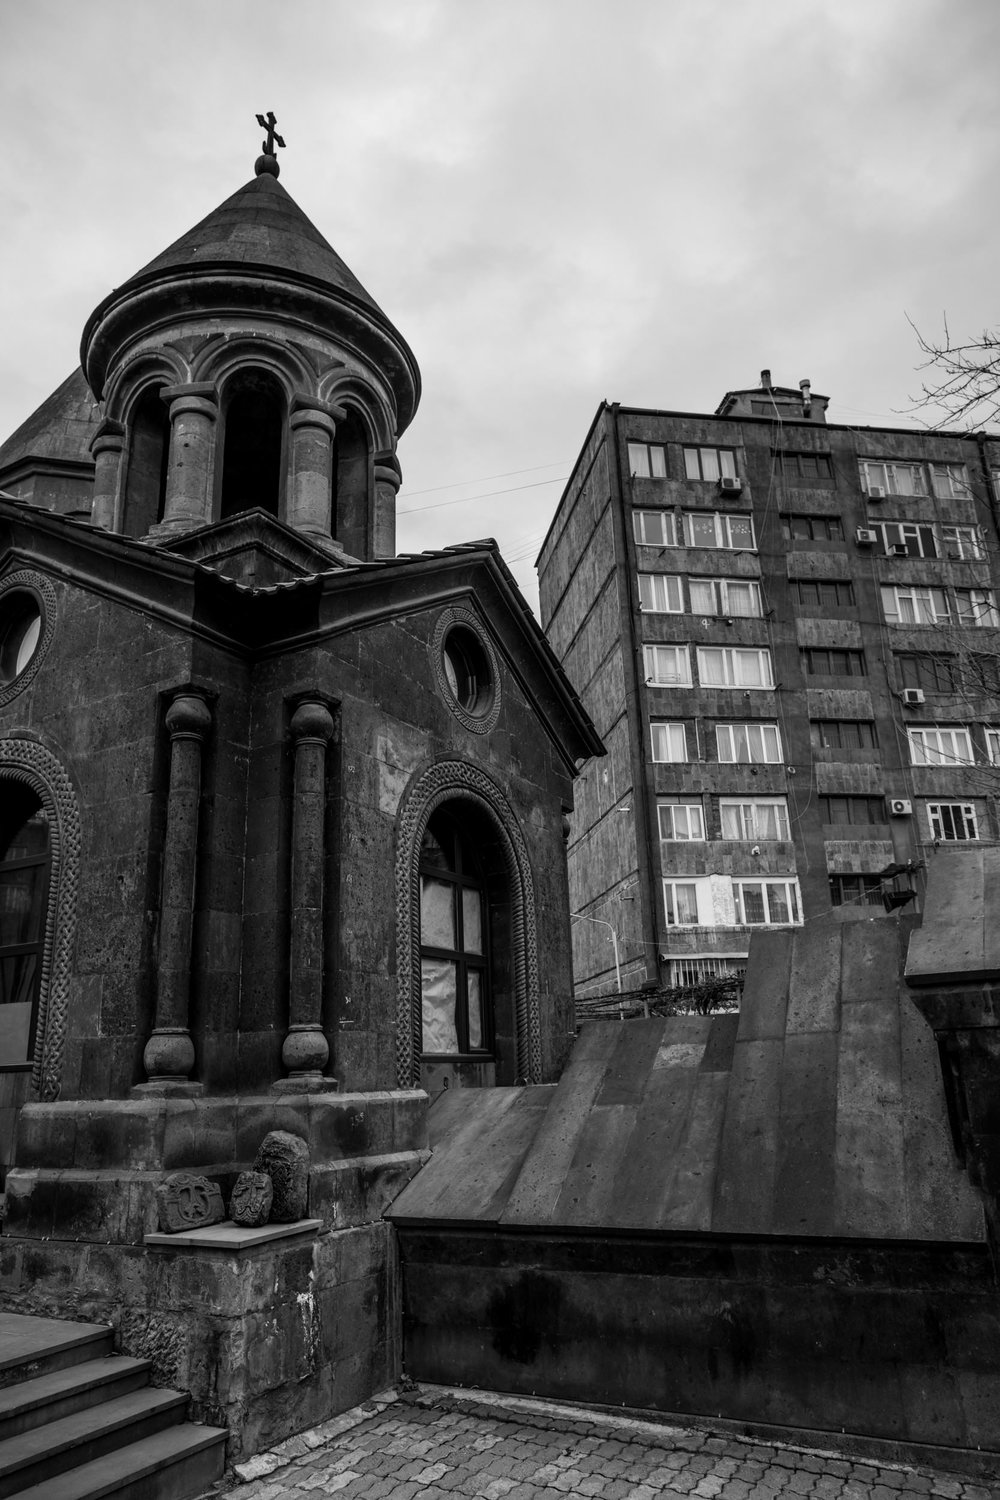 Zoravor S. Astvatsatsin Church sits hidden amongst its significantly younger and ugly concrete 'friends'